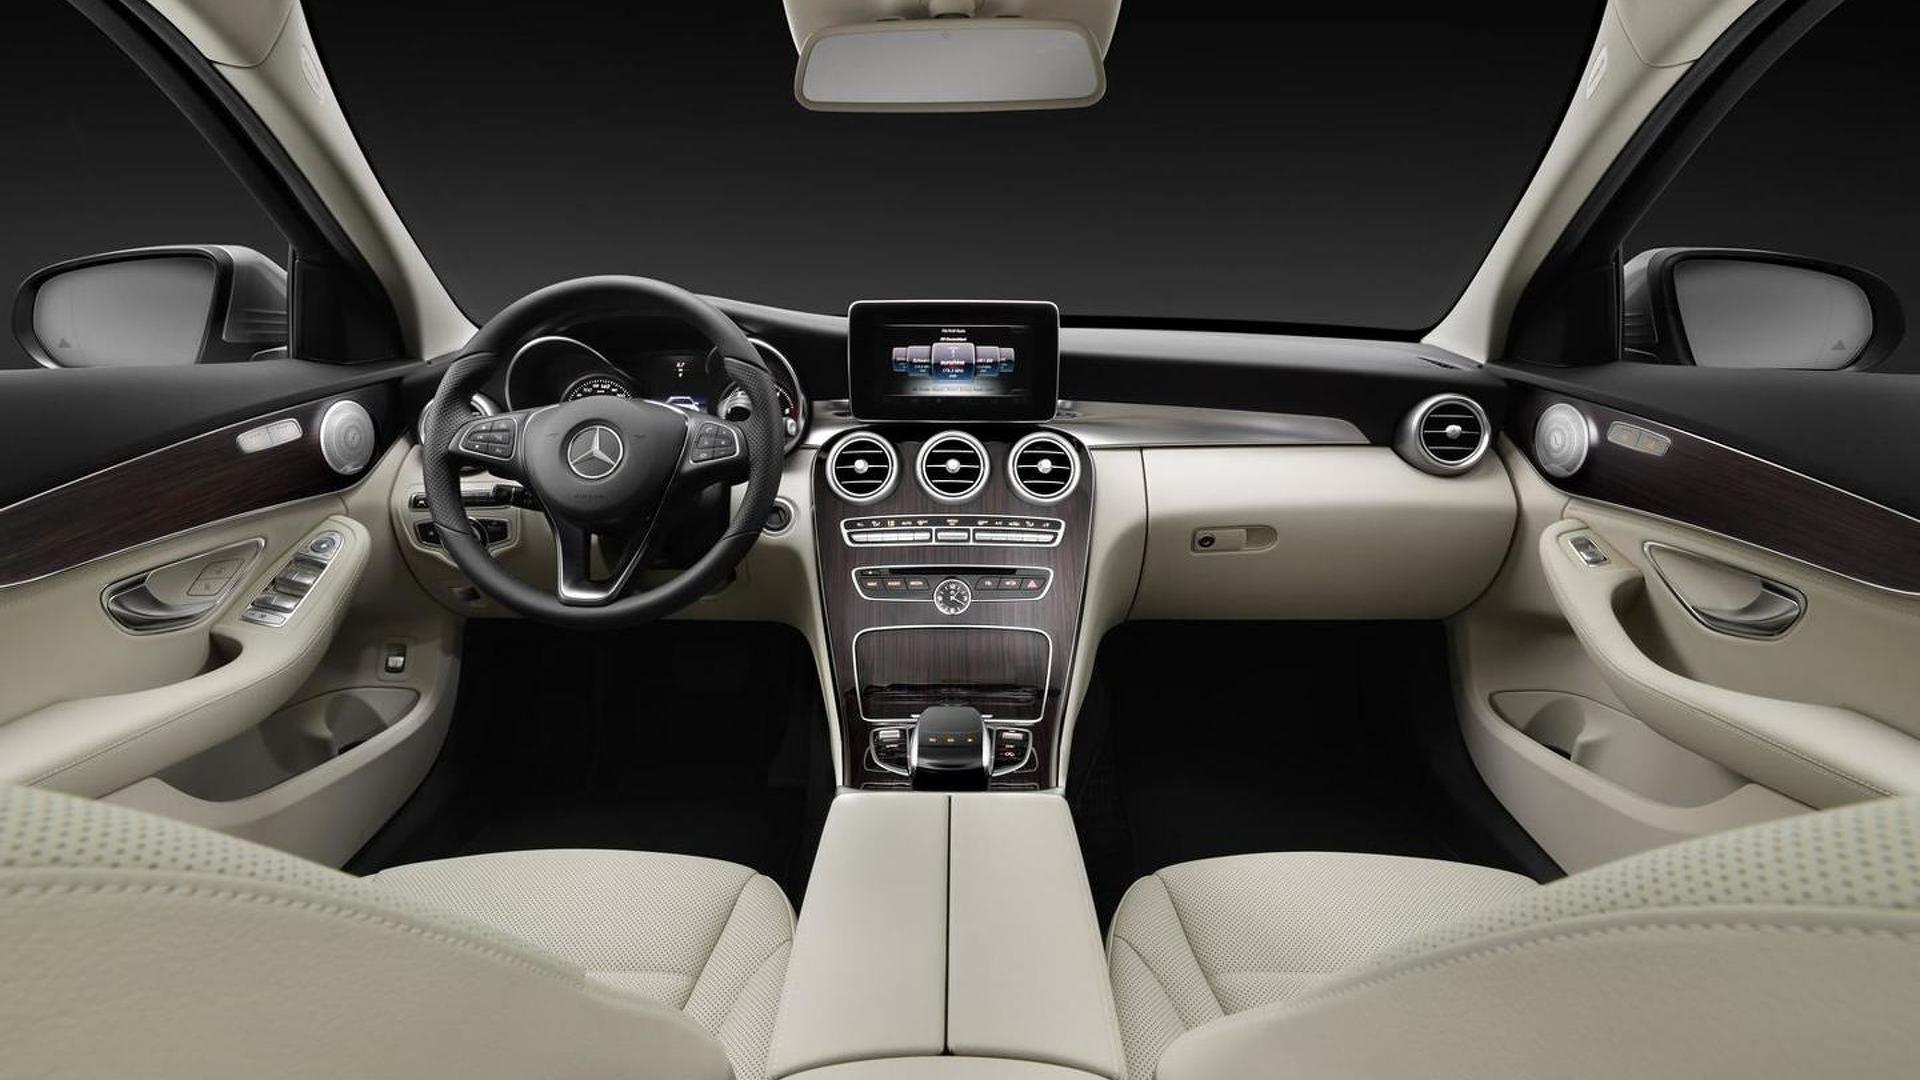 autotrader class mercedes research photos benz reviews specs c options abcd price trims ca